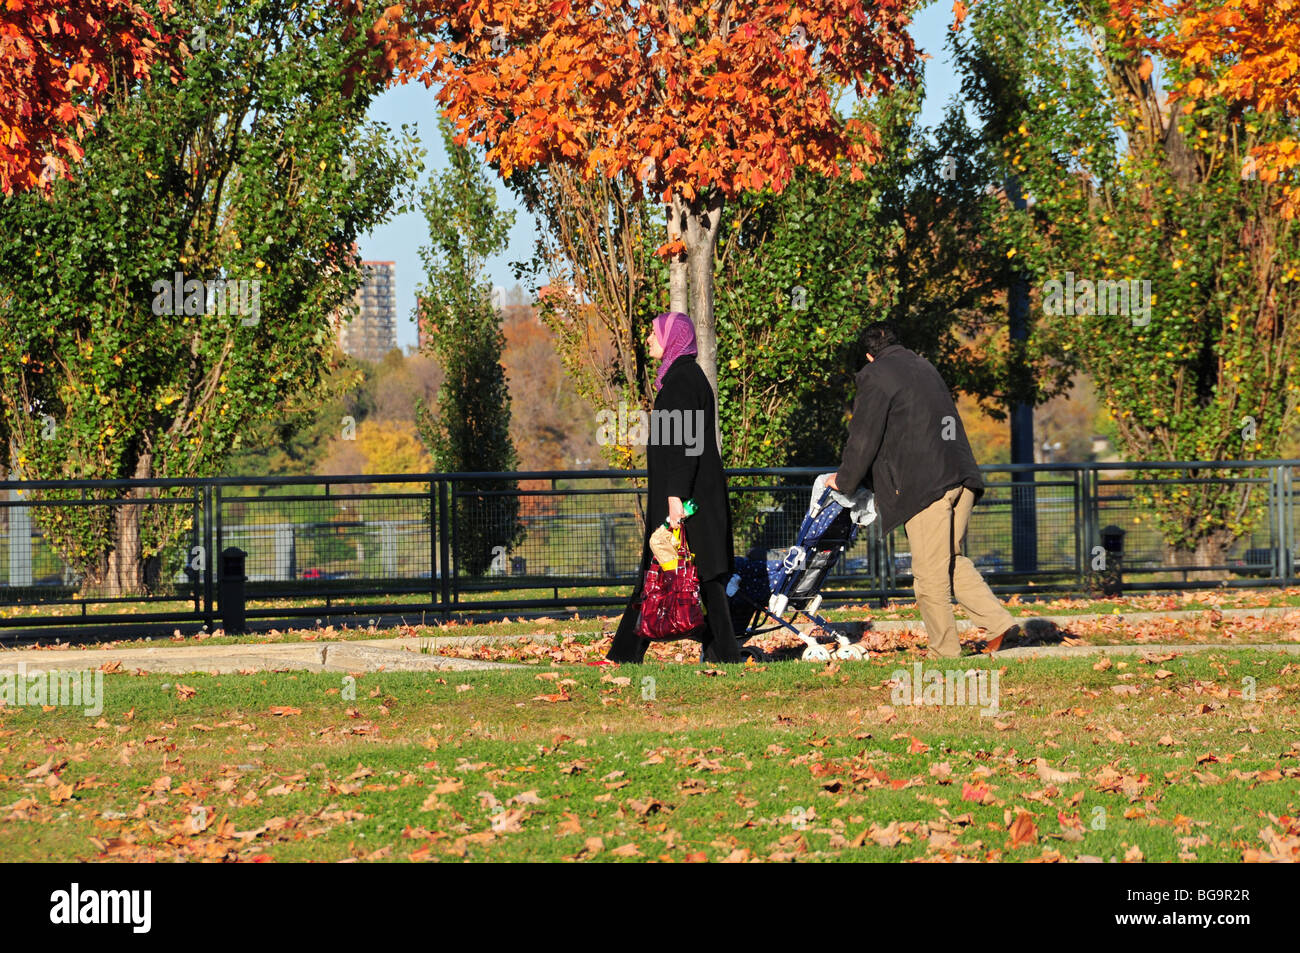 Family walking in a park Montreal - Stock Image